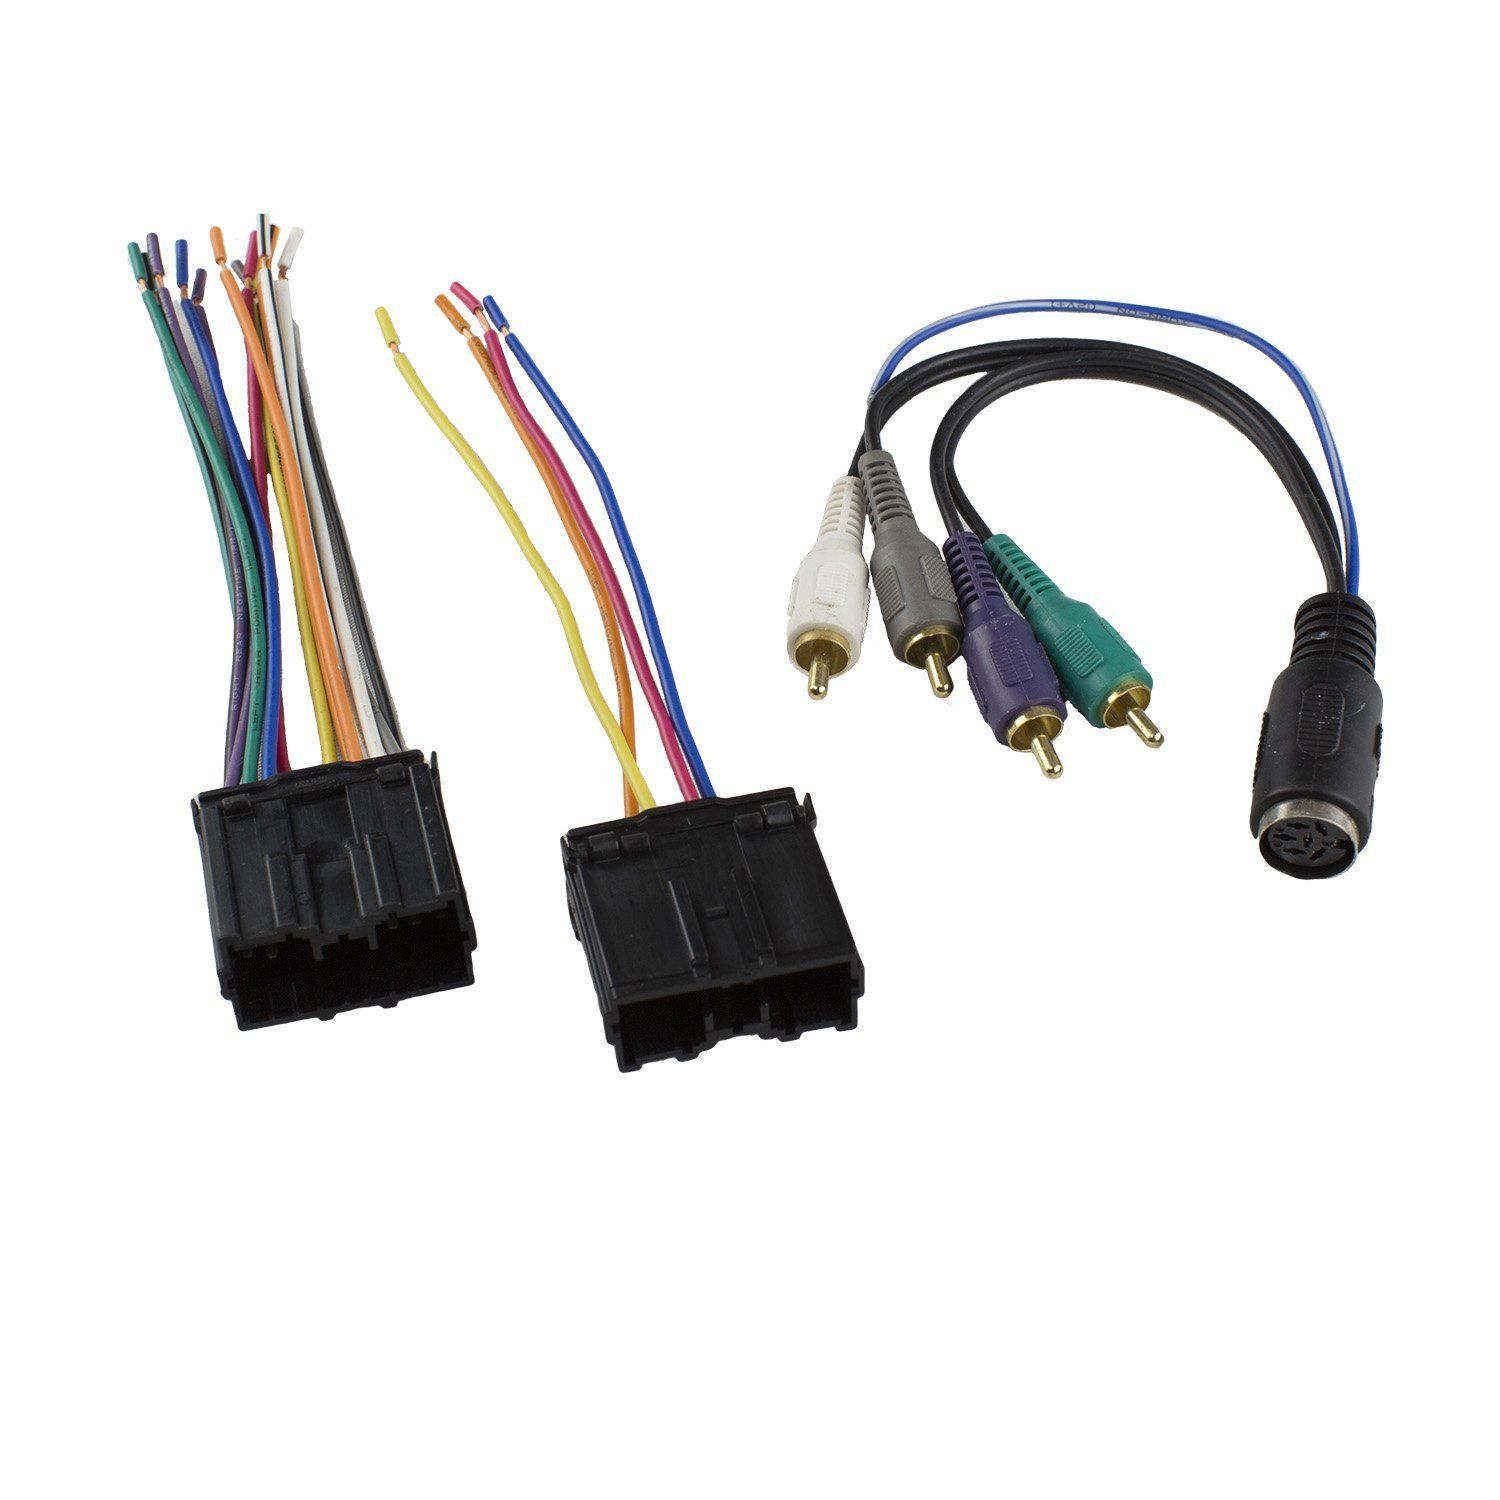 medium resolution of novosonics mif 7004 wiring harness for mitsubishi 4 speaker with amp integration 1994 2007 fits existing connector in your vehicle